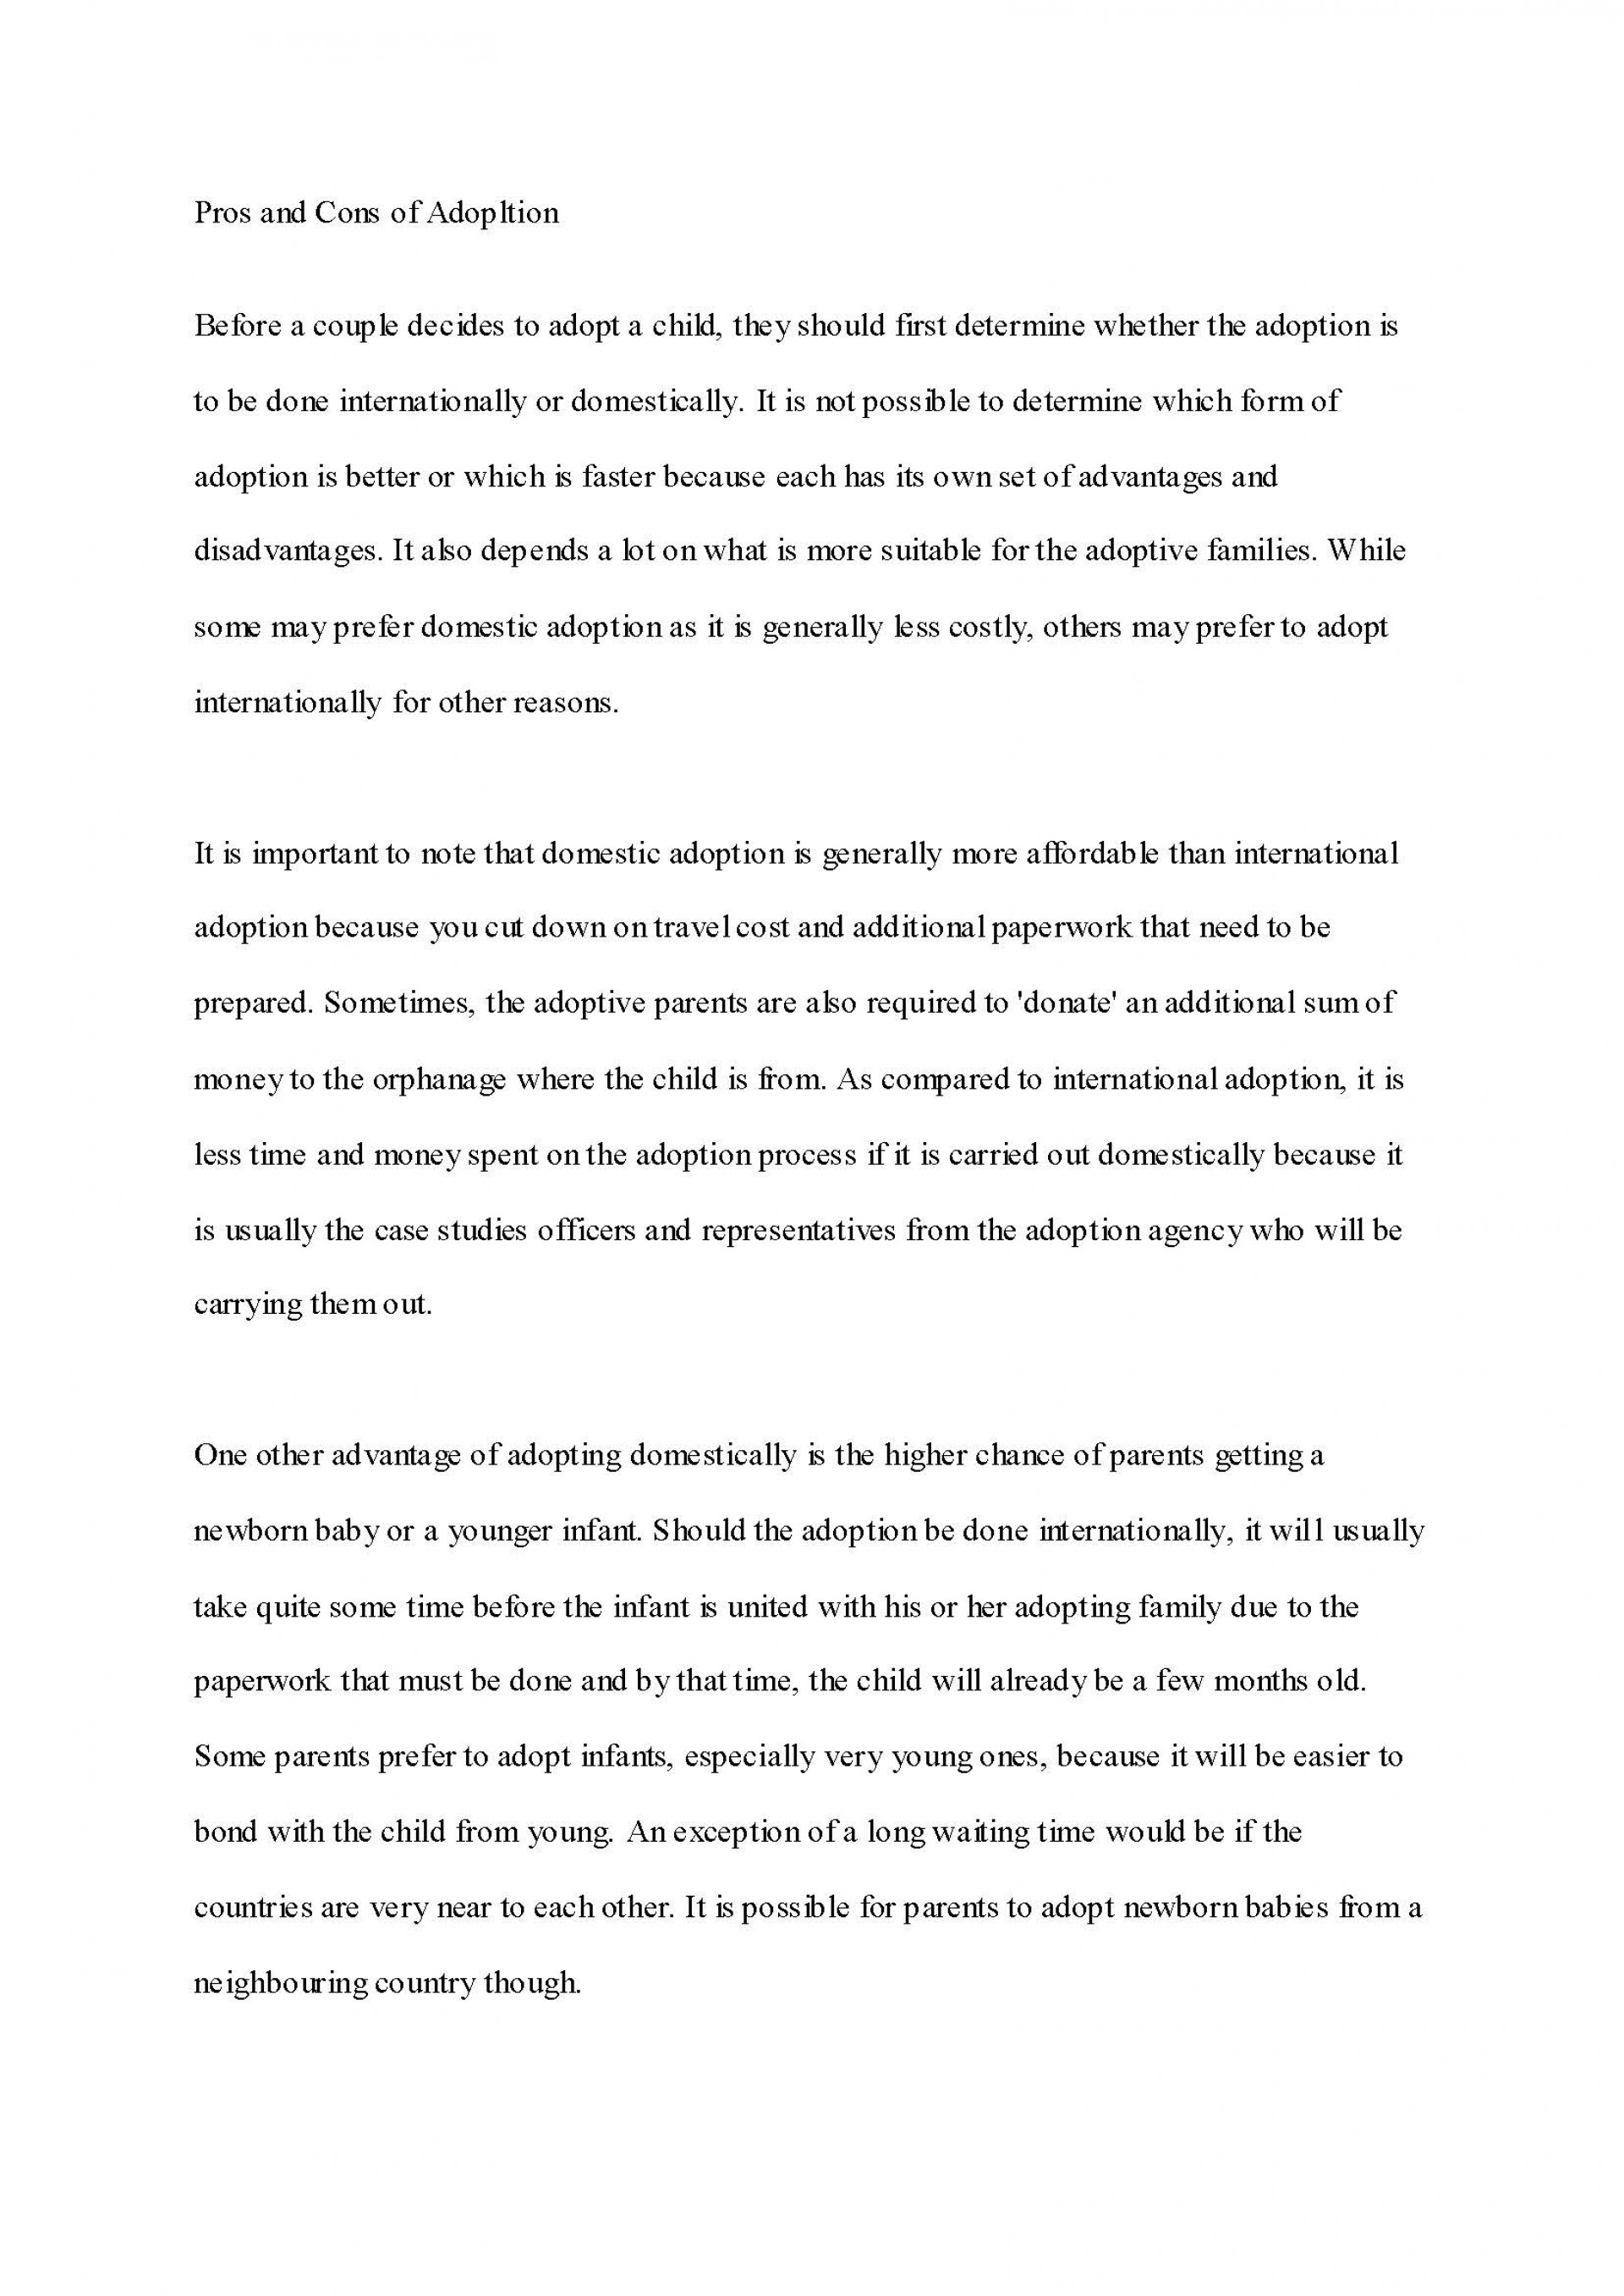 013 Process Essay Topics Adoption Sample Marvelous For College Examples Middle School Funny 1920